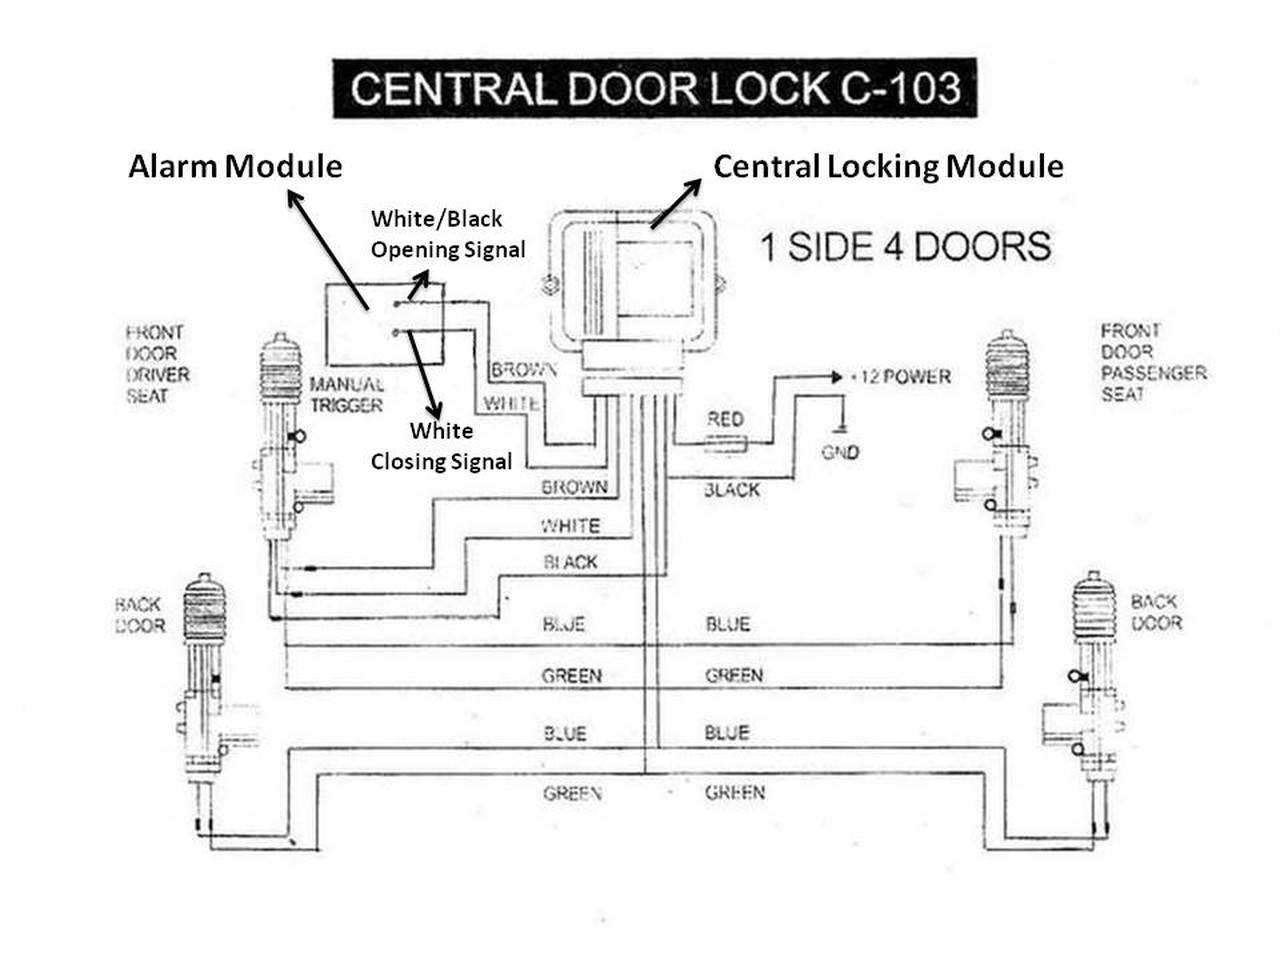 Car Central Locking Wiring Diagram - Wiring Diagram Long on sincgars radio configurations diagrams, led circuit diagrams, battery diagrams, electronic circuit diagrams, smart car diagrams, gmc fuse box diagrams, hvac diagrams, series and parallel circuits diagrams, lighting diagrams, internet of things diagrams, electrical diagrams, pinout diagrams, transformer diagrams, engine diagrams, motor diagrams, honda motorcycle repair diagrams, troubleshooting diagrams, switch diagrams, friendship bracelet diagrams,